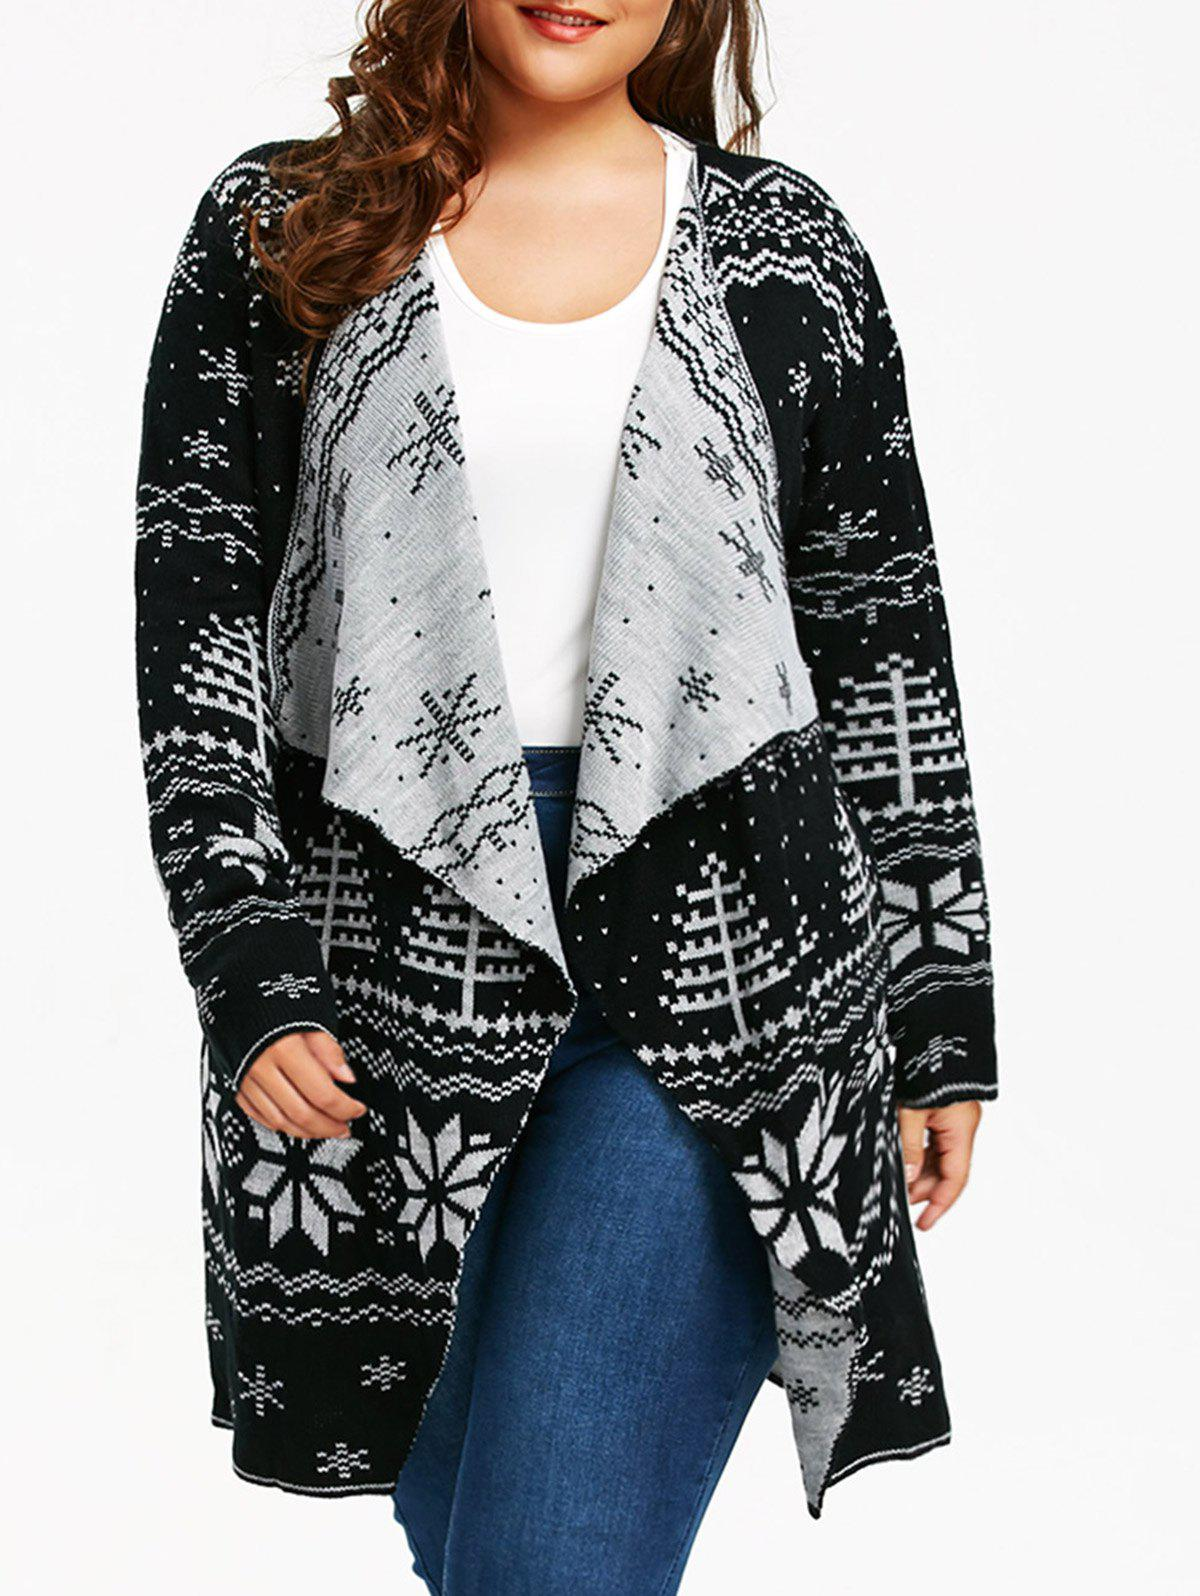 Christmas Snowflake Plus Size Tunic Draped CardiganWOMEN<br><br>Size: 5XL; Color: BLACK; Type: Cardigans; Material: Acrylic,Polyester; Sleeve Length: Full; Collar: Collarless; Style: Casual; Season: Fall,Spring,Winter; Pattern Type: Others; Elasticity: Micro-elastic; Weight: 0.6800kg; Package Contents: 1 x Cardigan;